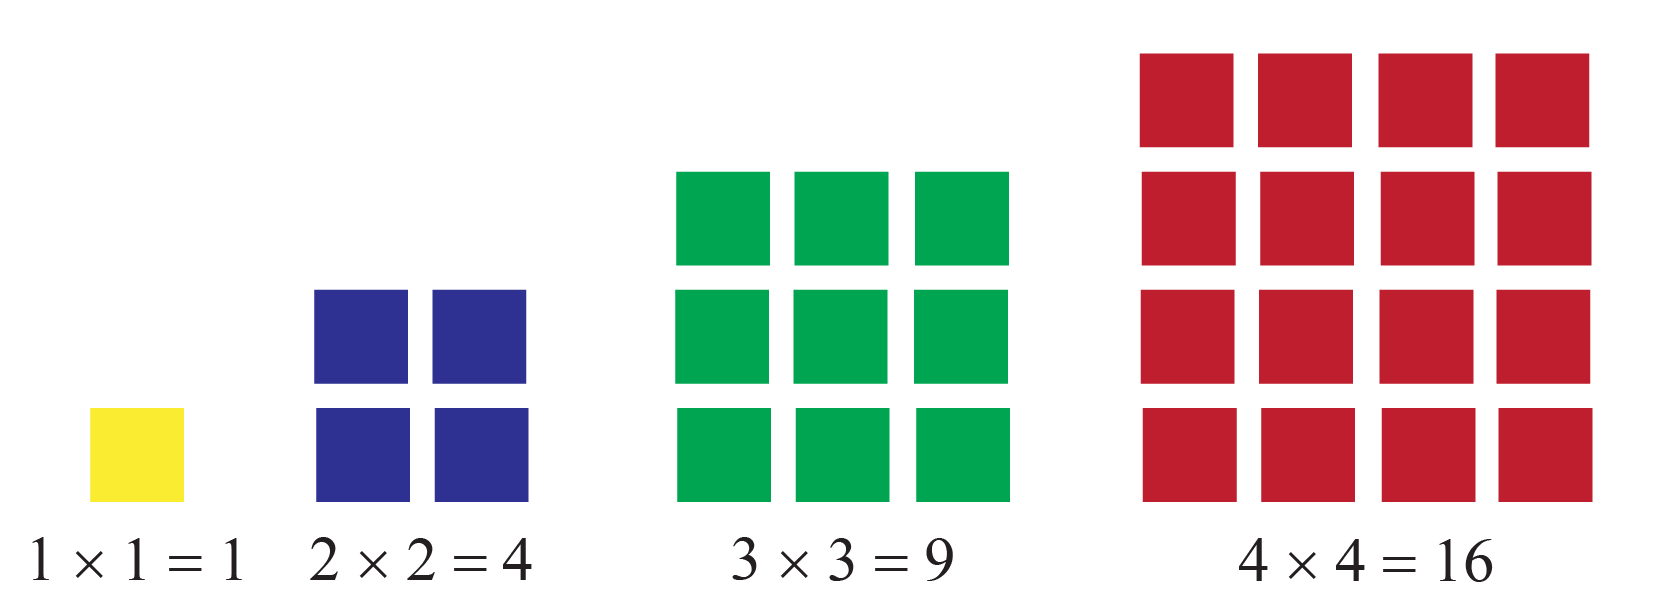 General form of square number sequence